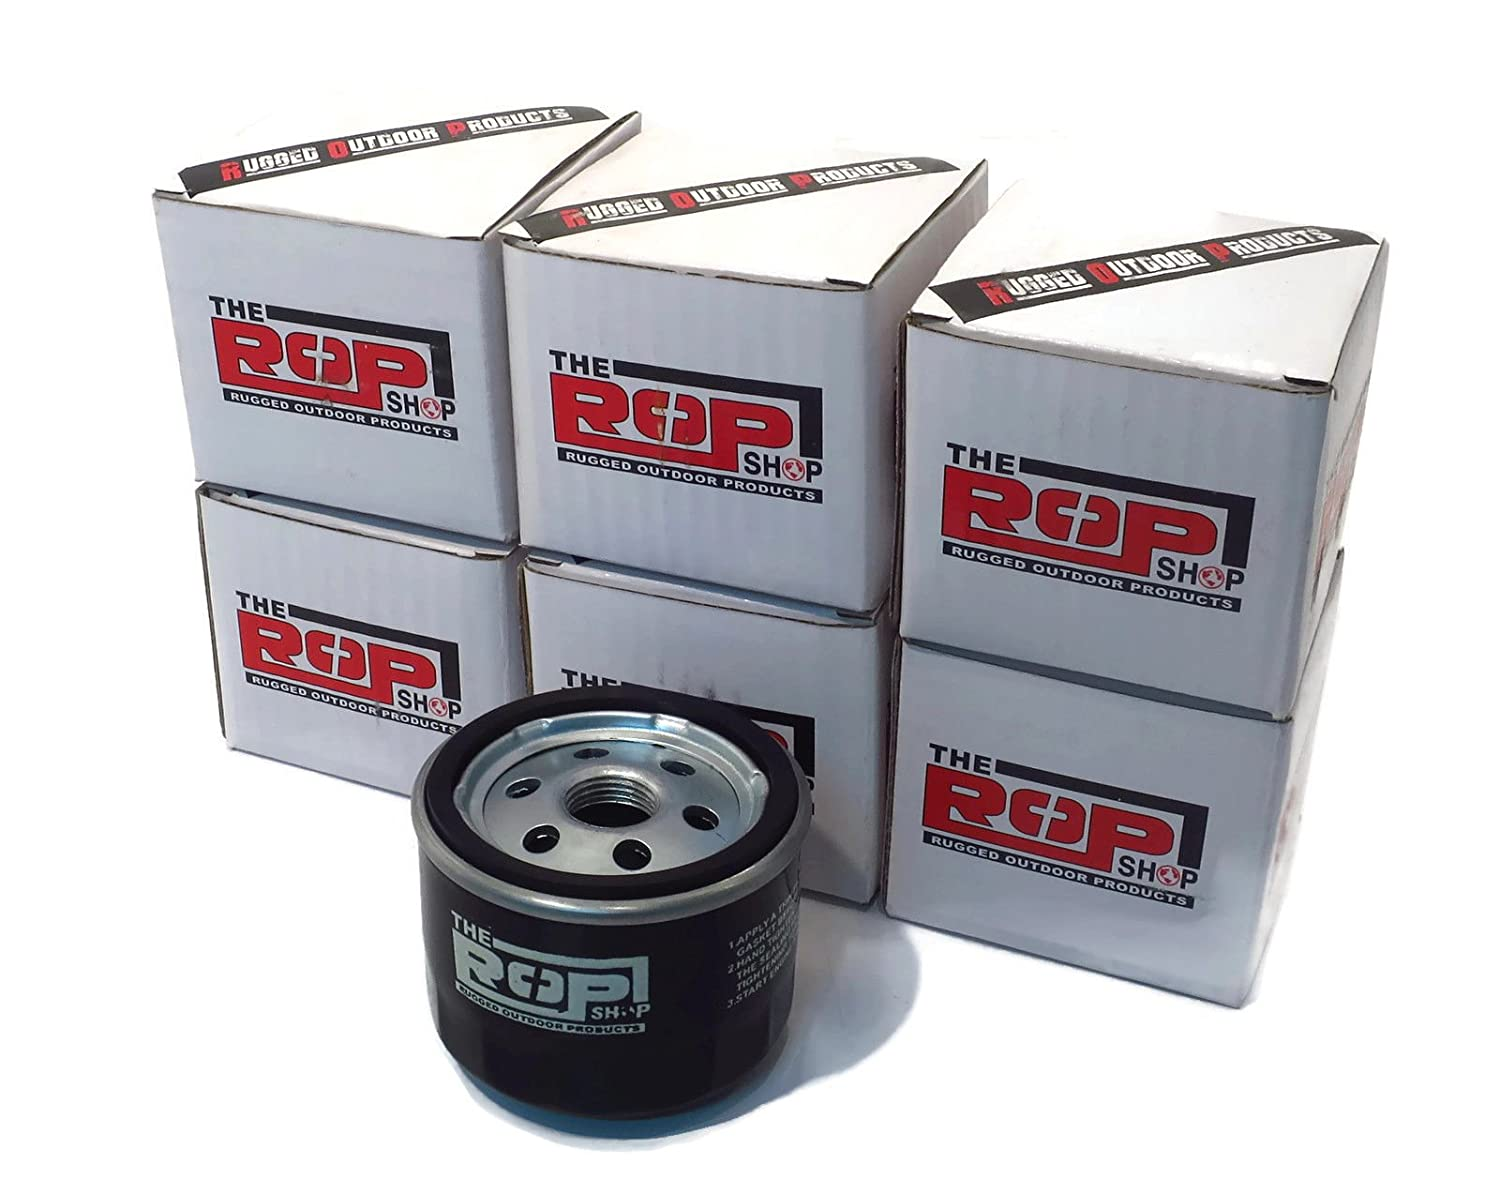 theropshop; TRYK23271302149631 Welironly New OIL FILTERS for Briggs /& Stratton // B/&S 492056 695396 696854 842921 6 ,#id